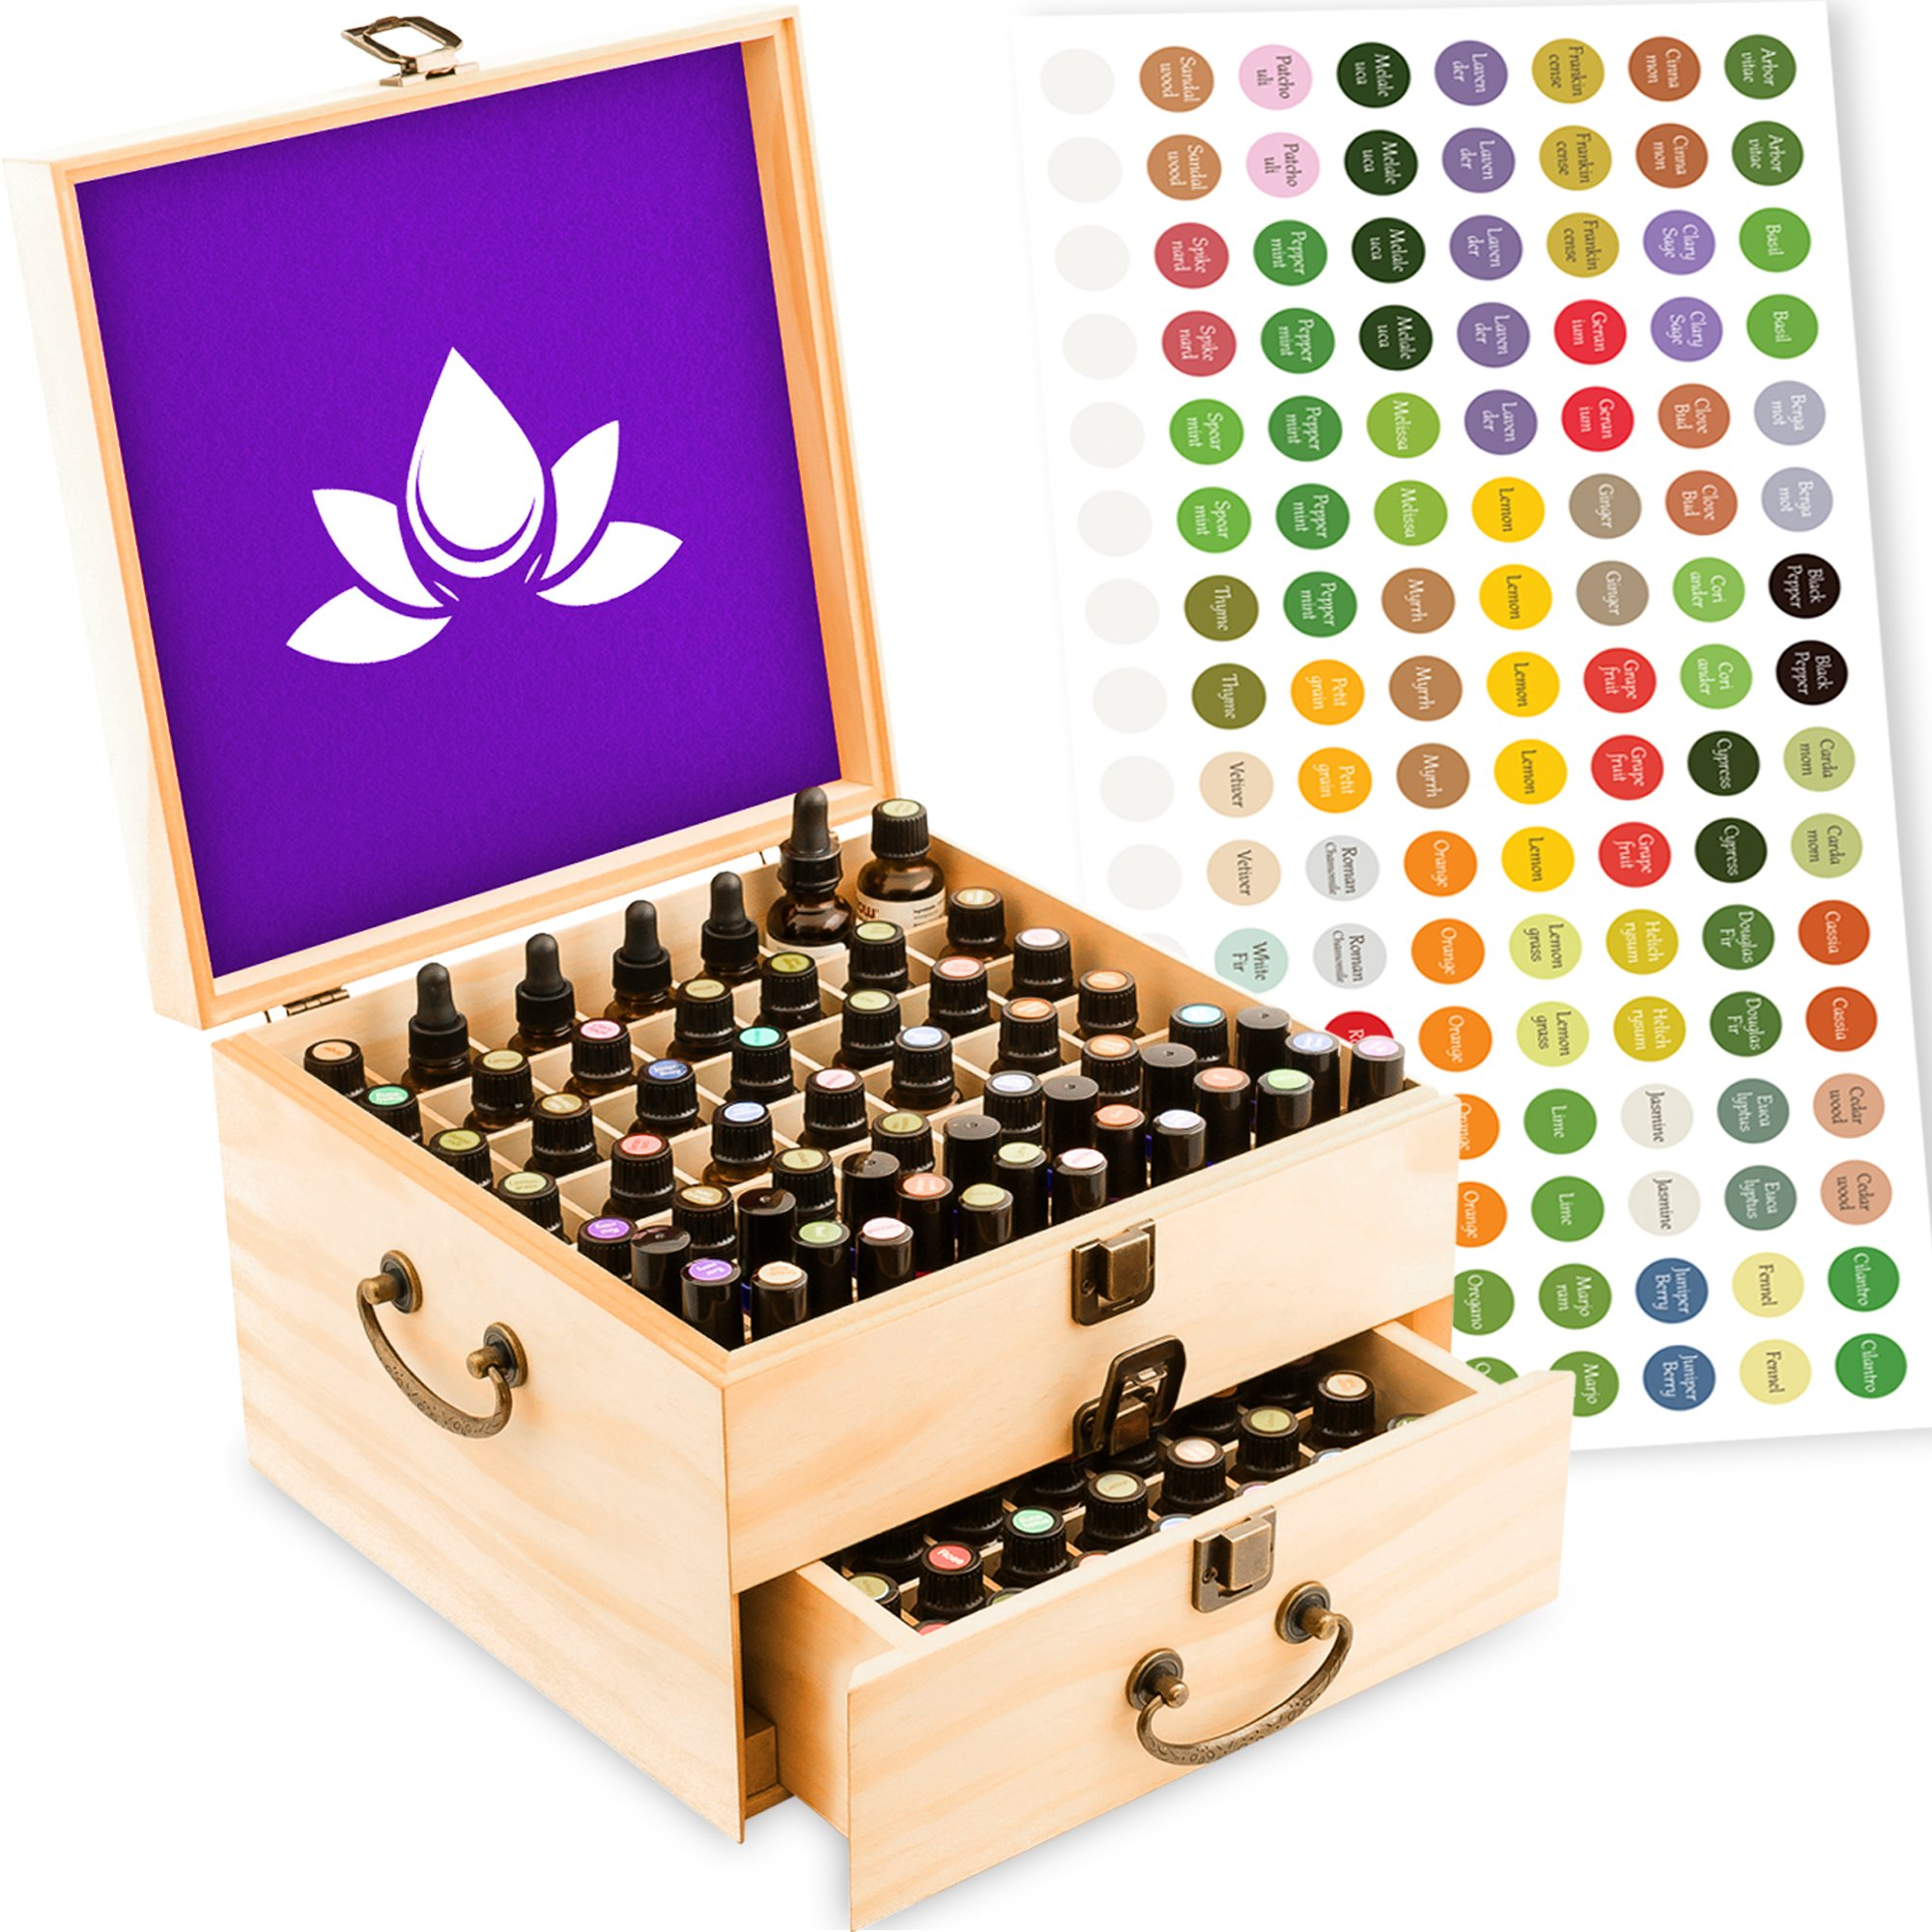 Essential Oil Box - Wooden Storage Case with Handle. Holds 98 Bottles & Roller Balls. 2 Tier Space Saver. Sealed Natural Finish. Large Organizer Best for Keeping Your Oils Safe. Free EO Labels